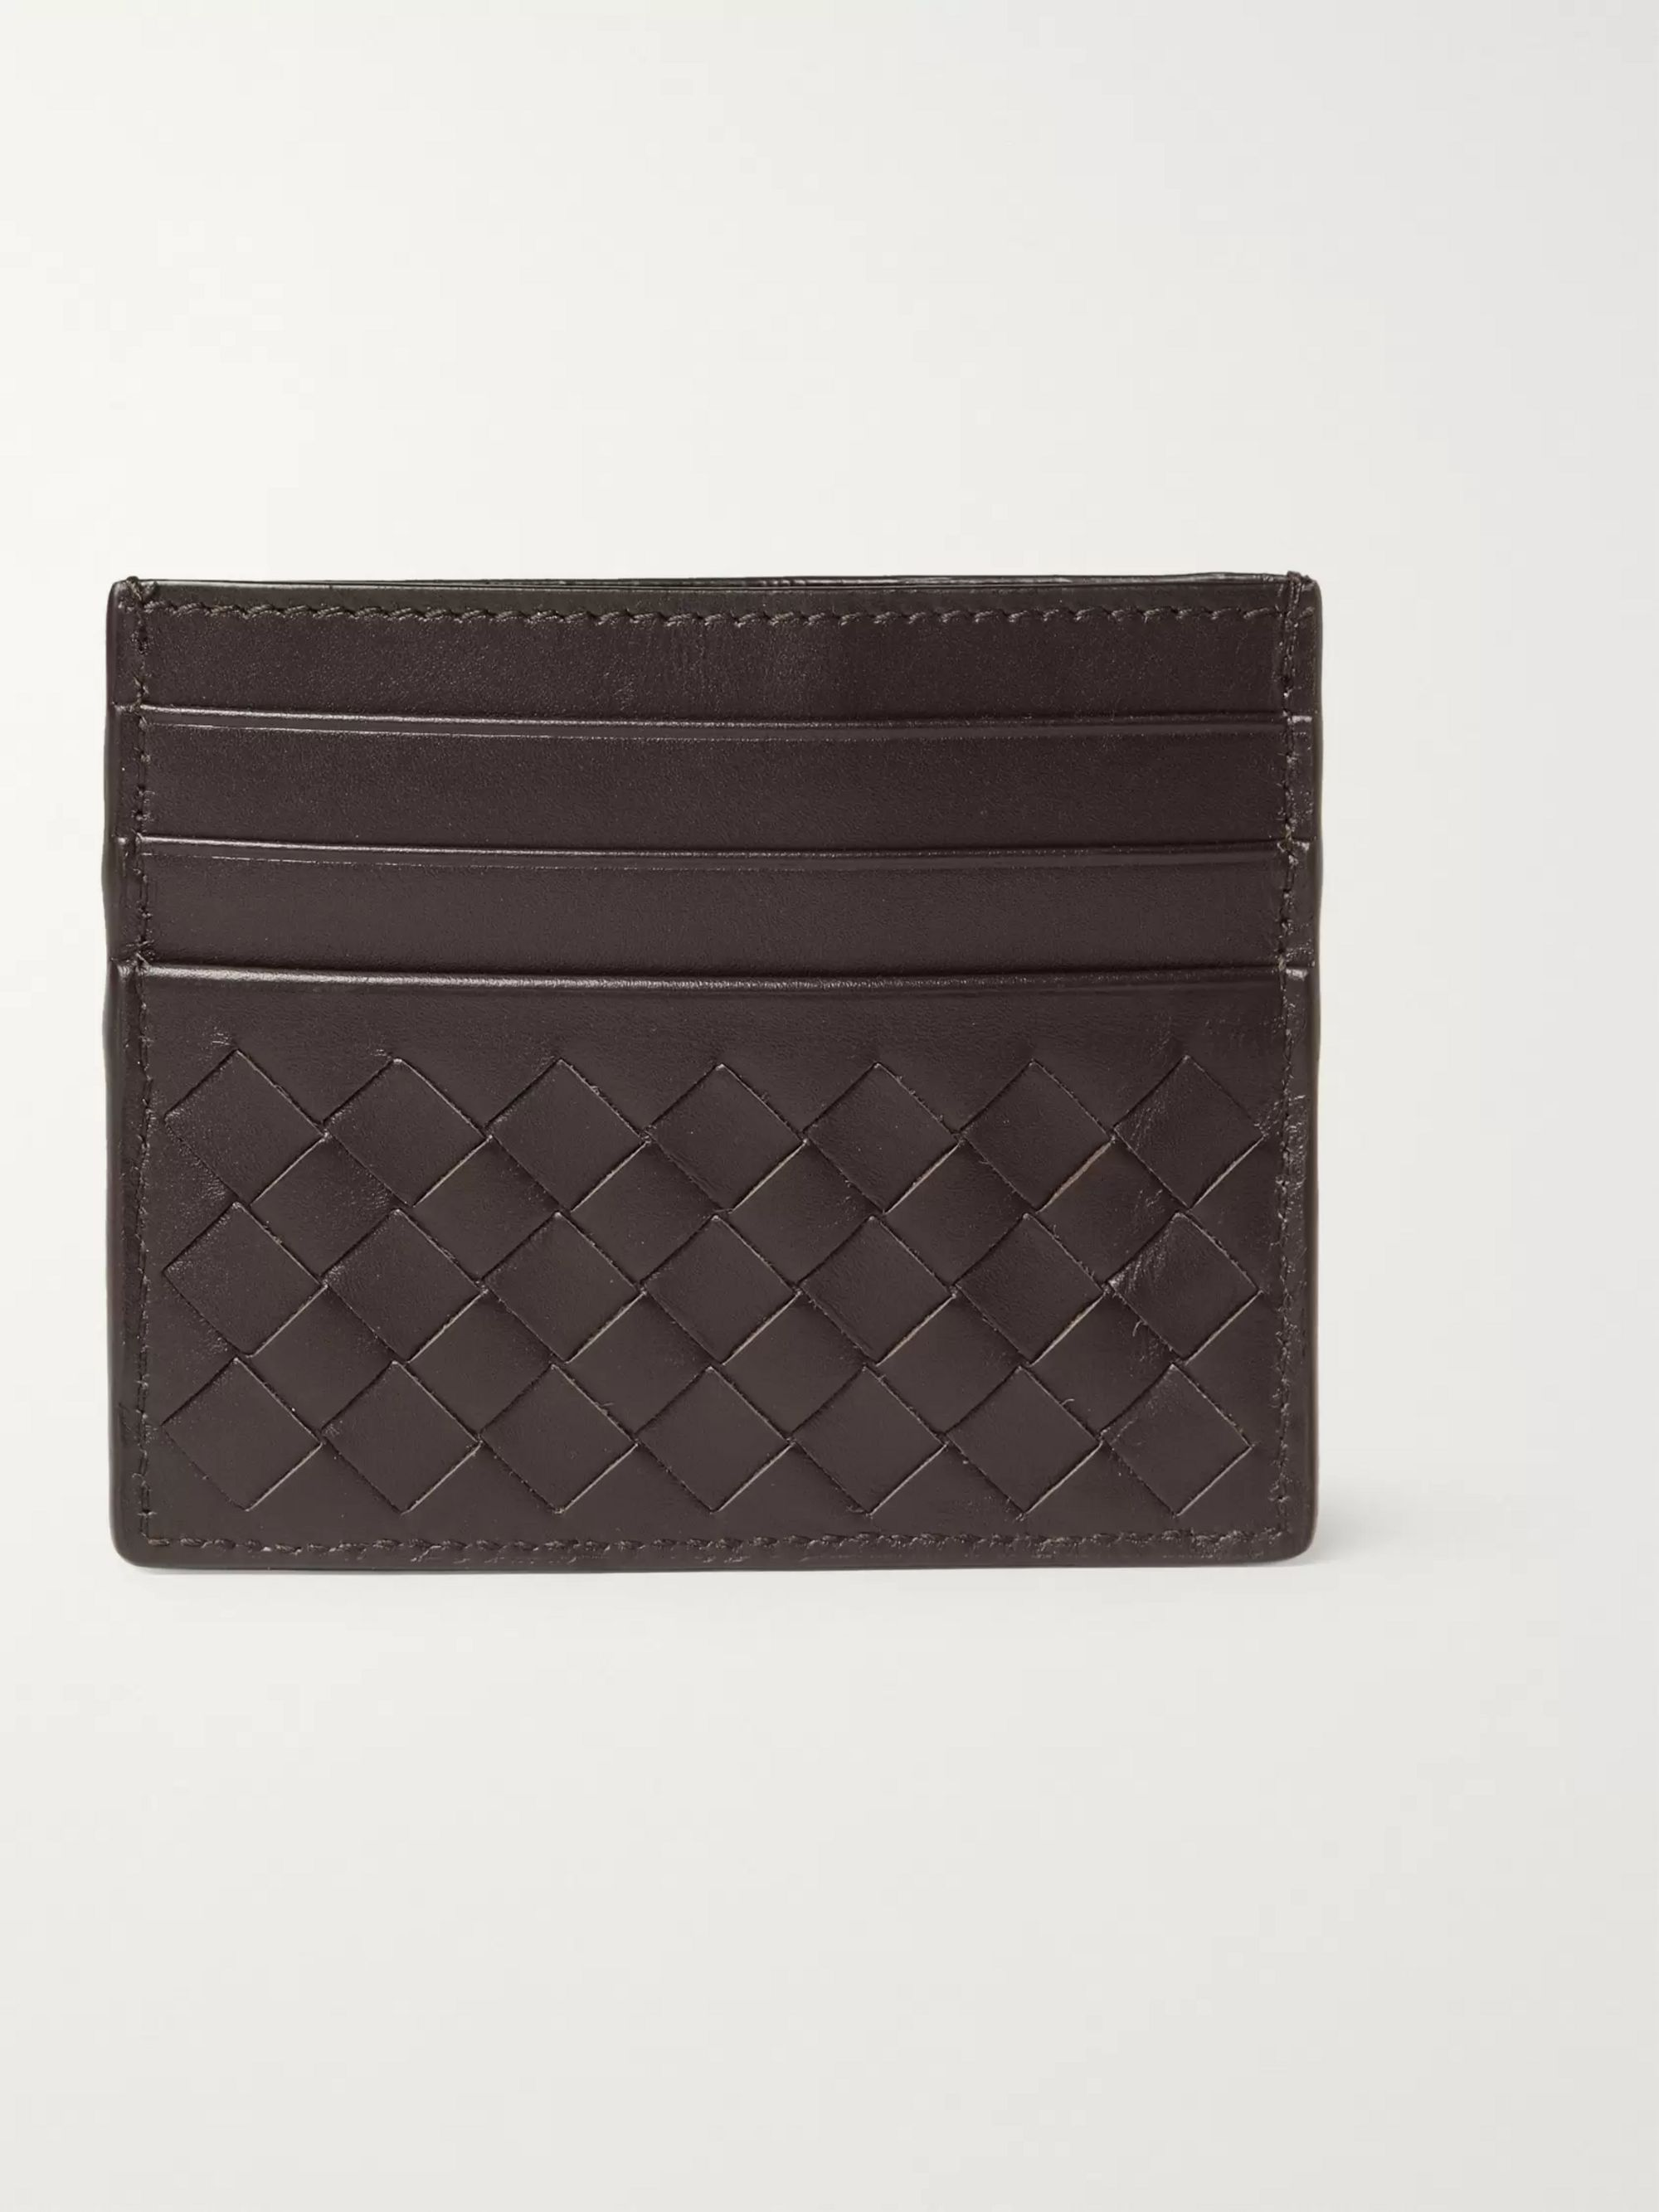 Bottega Veneta Intrecciato Woven Leather Cardholder